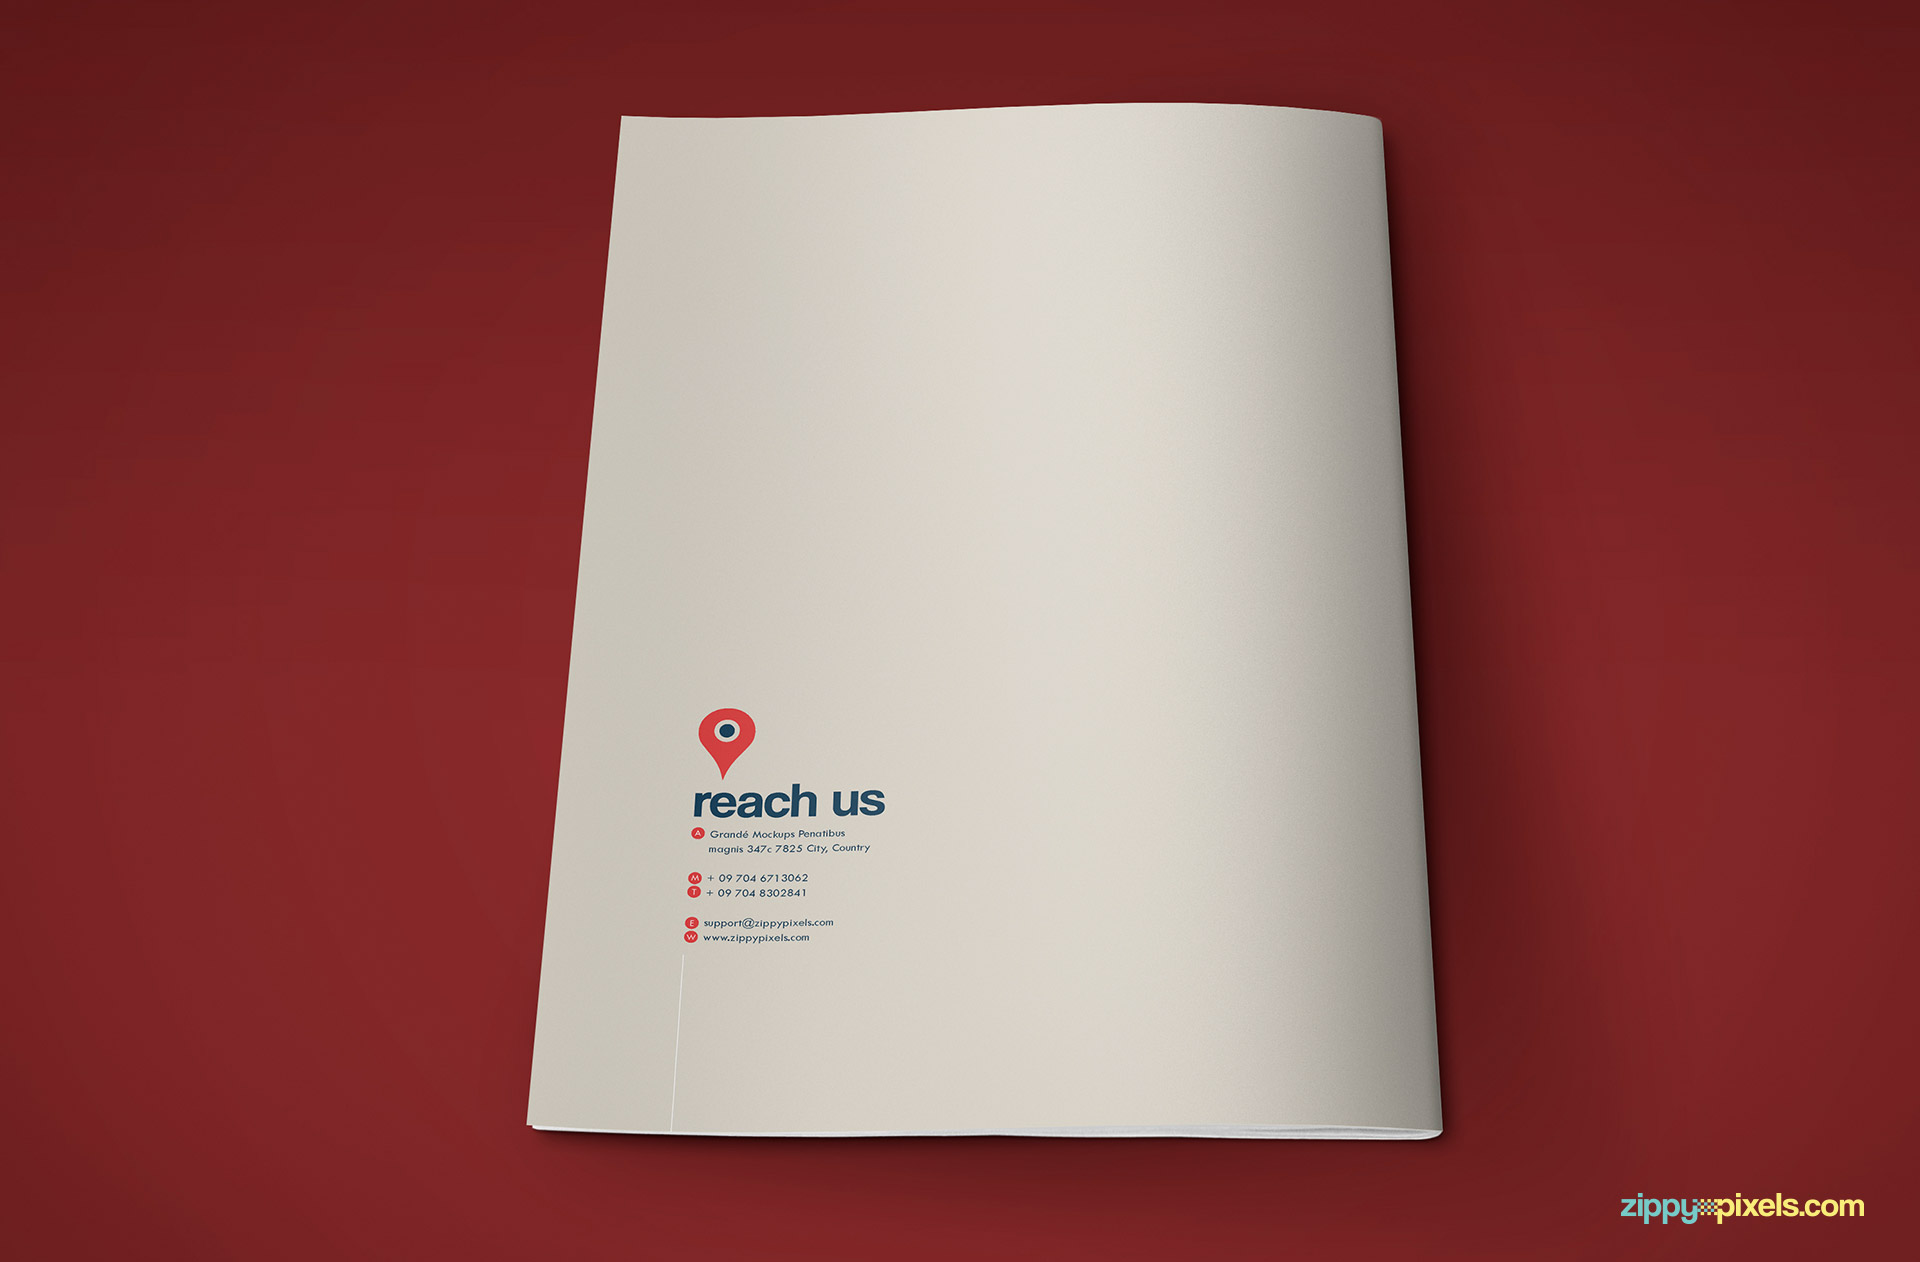 Back Cover of Professional Brand Guidelines Template